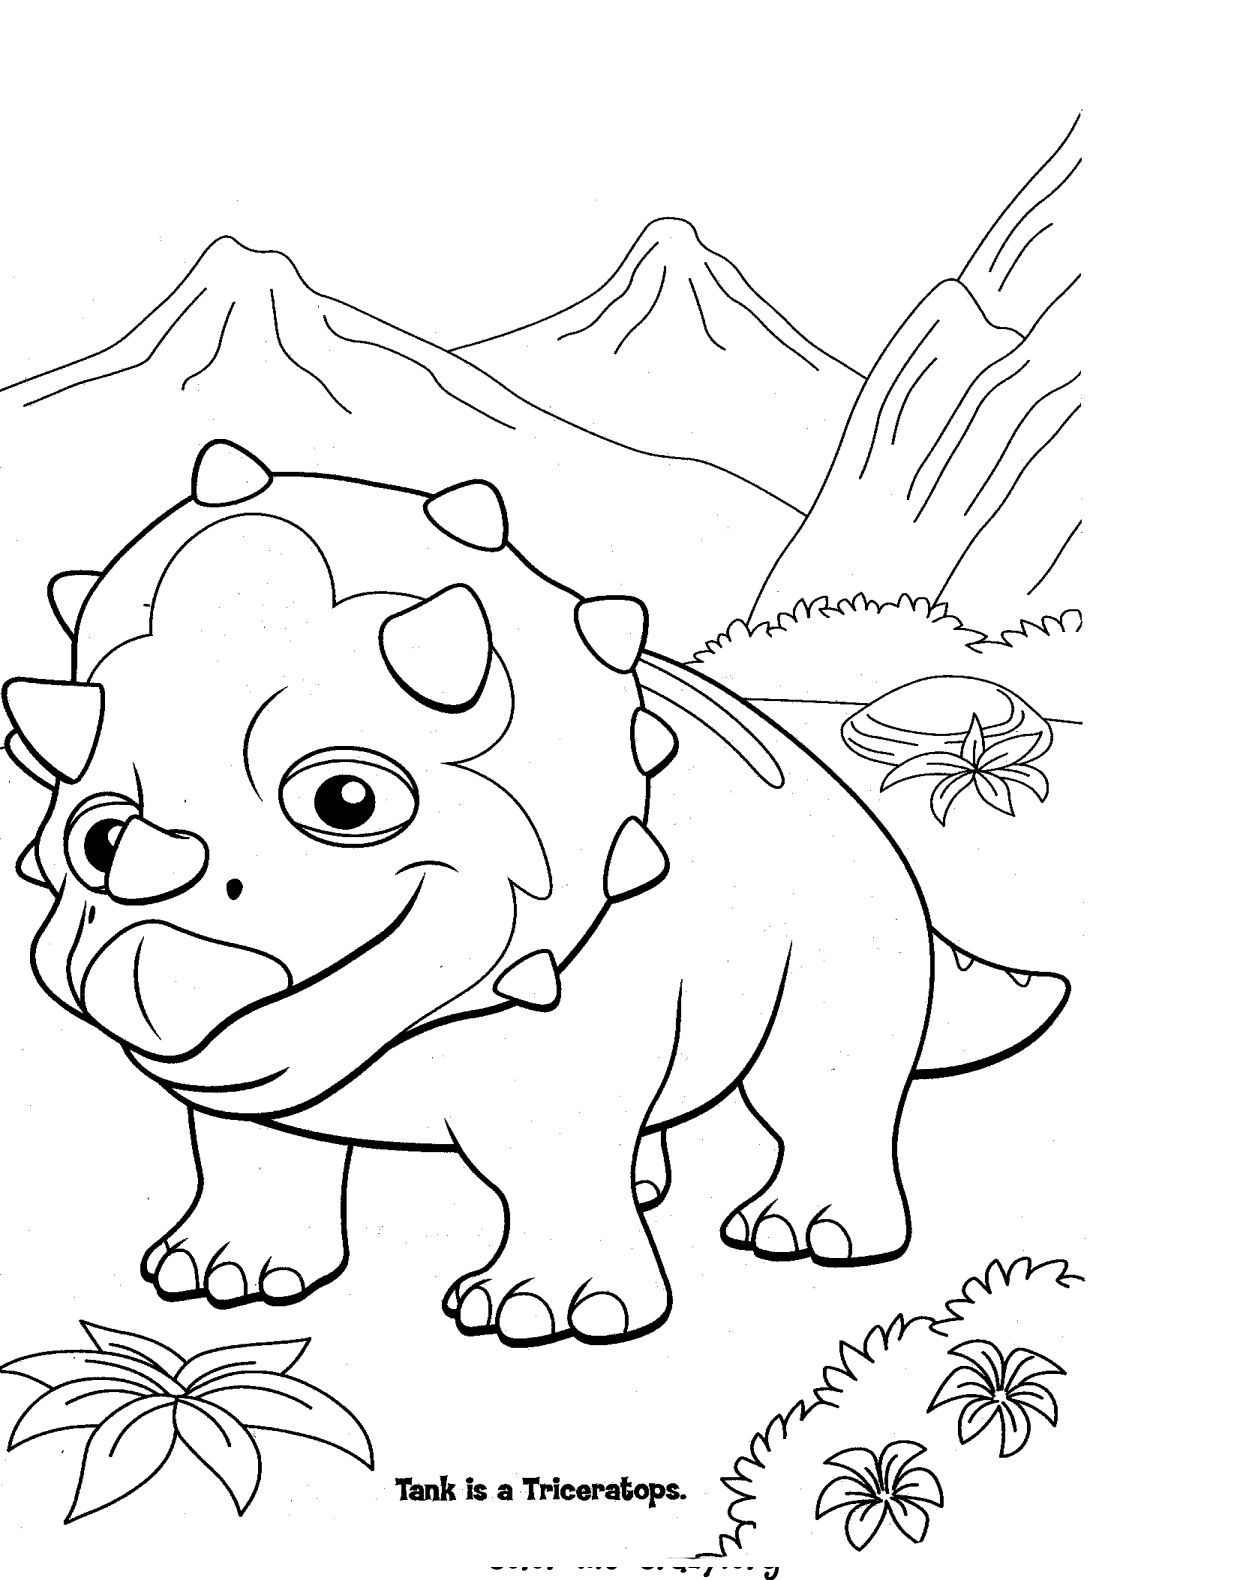 dinosaur train coloring pages dinosaurs pictures and facts - Coloring Pages Of Dinosaurs